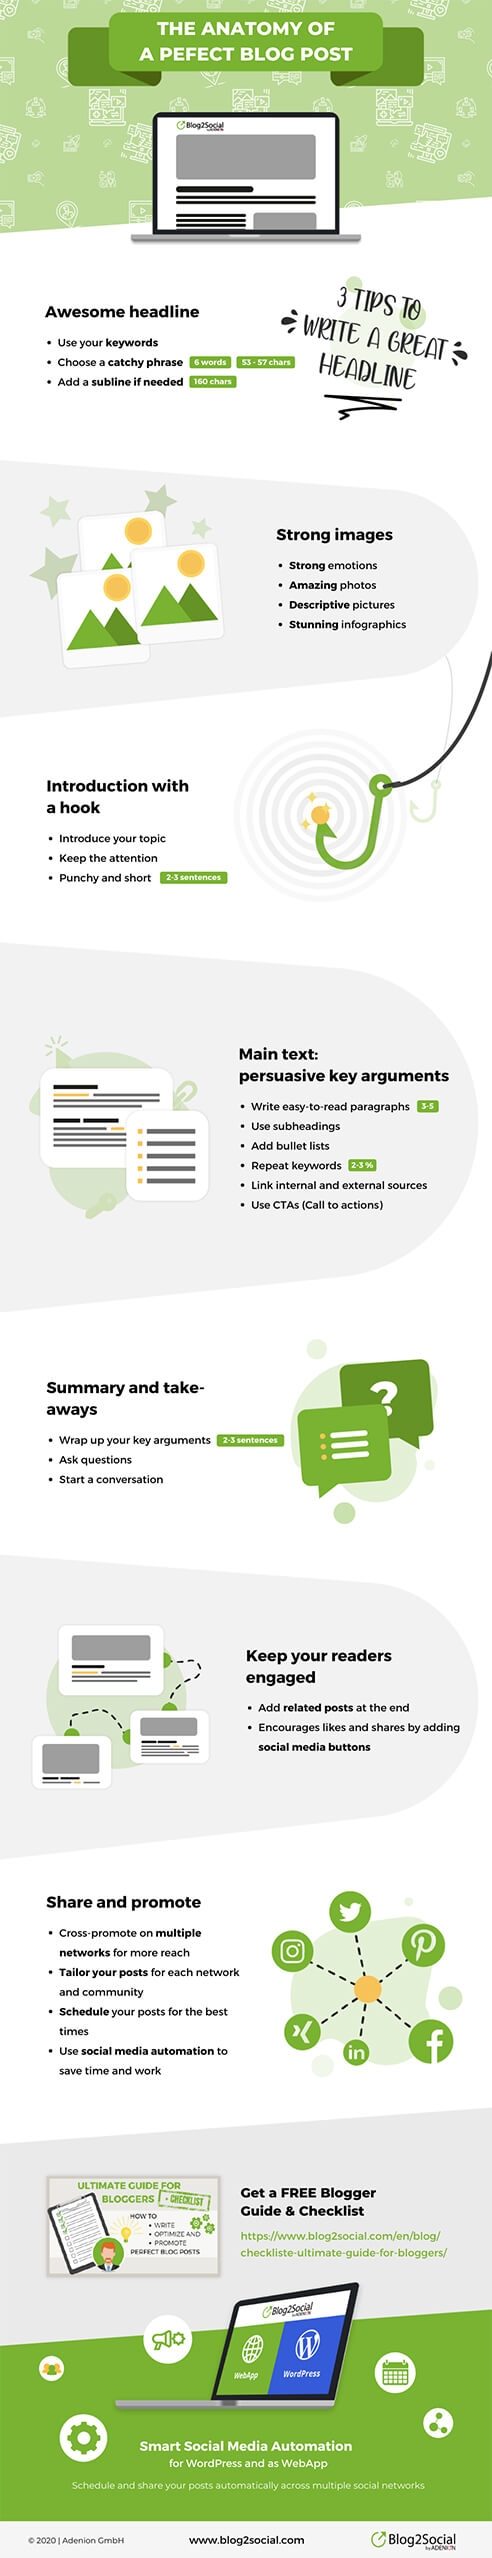 The Anatomy of a Perfect Blog Post [Infographic] - Blog26Social